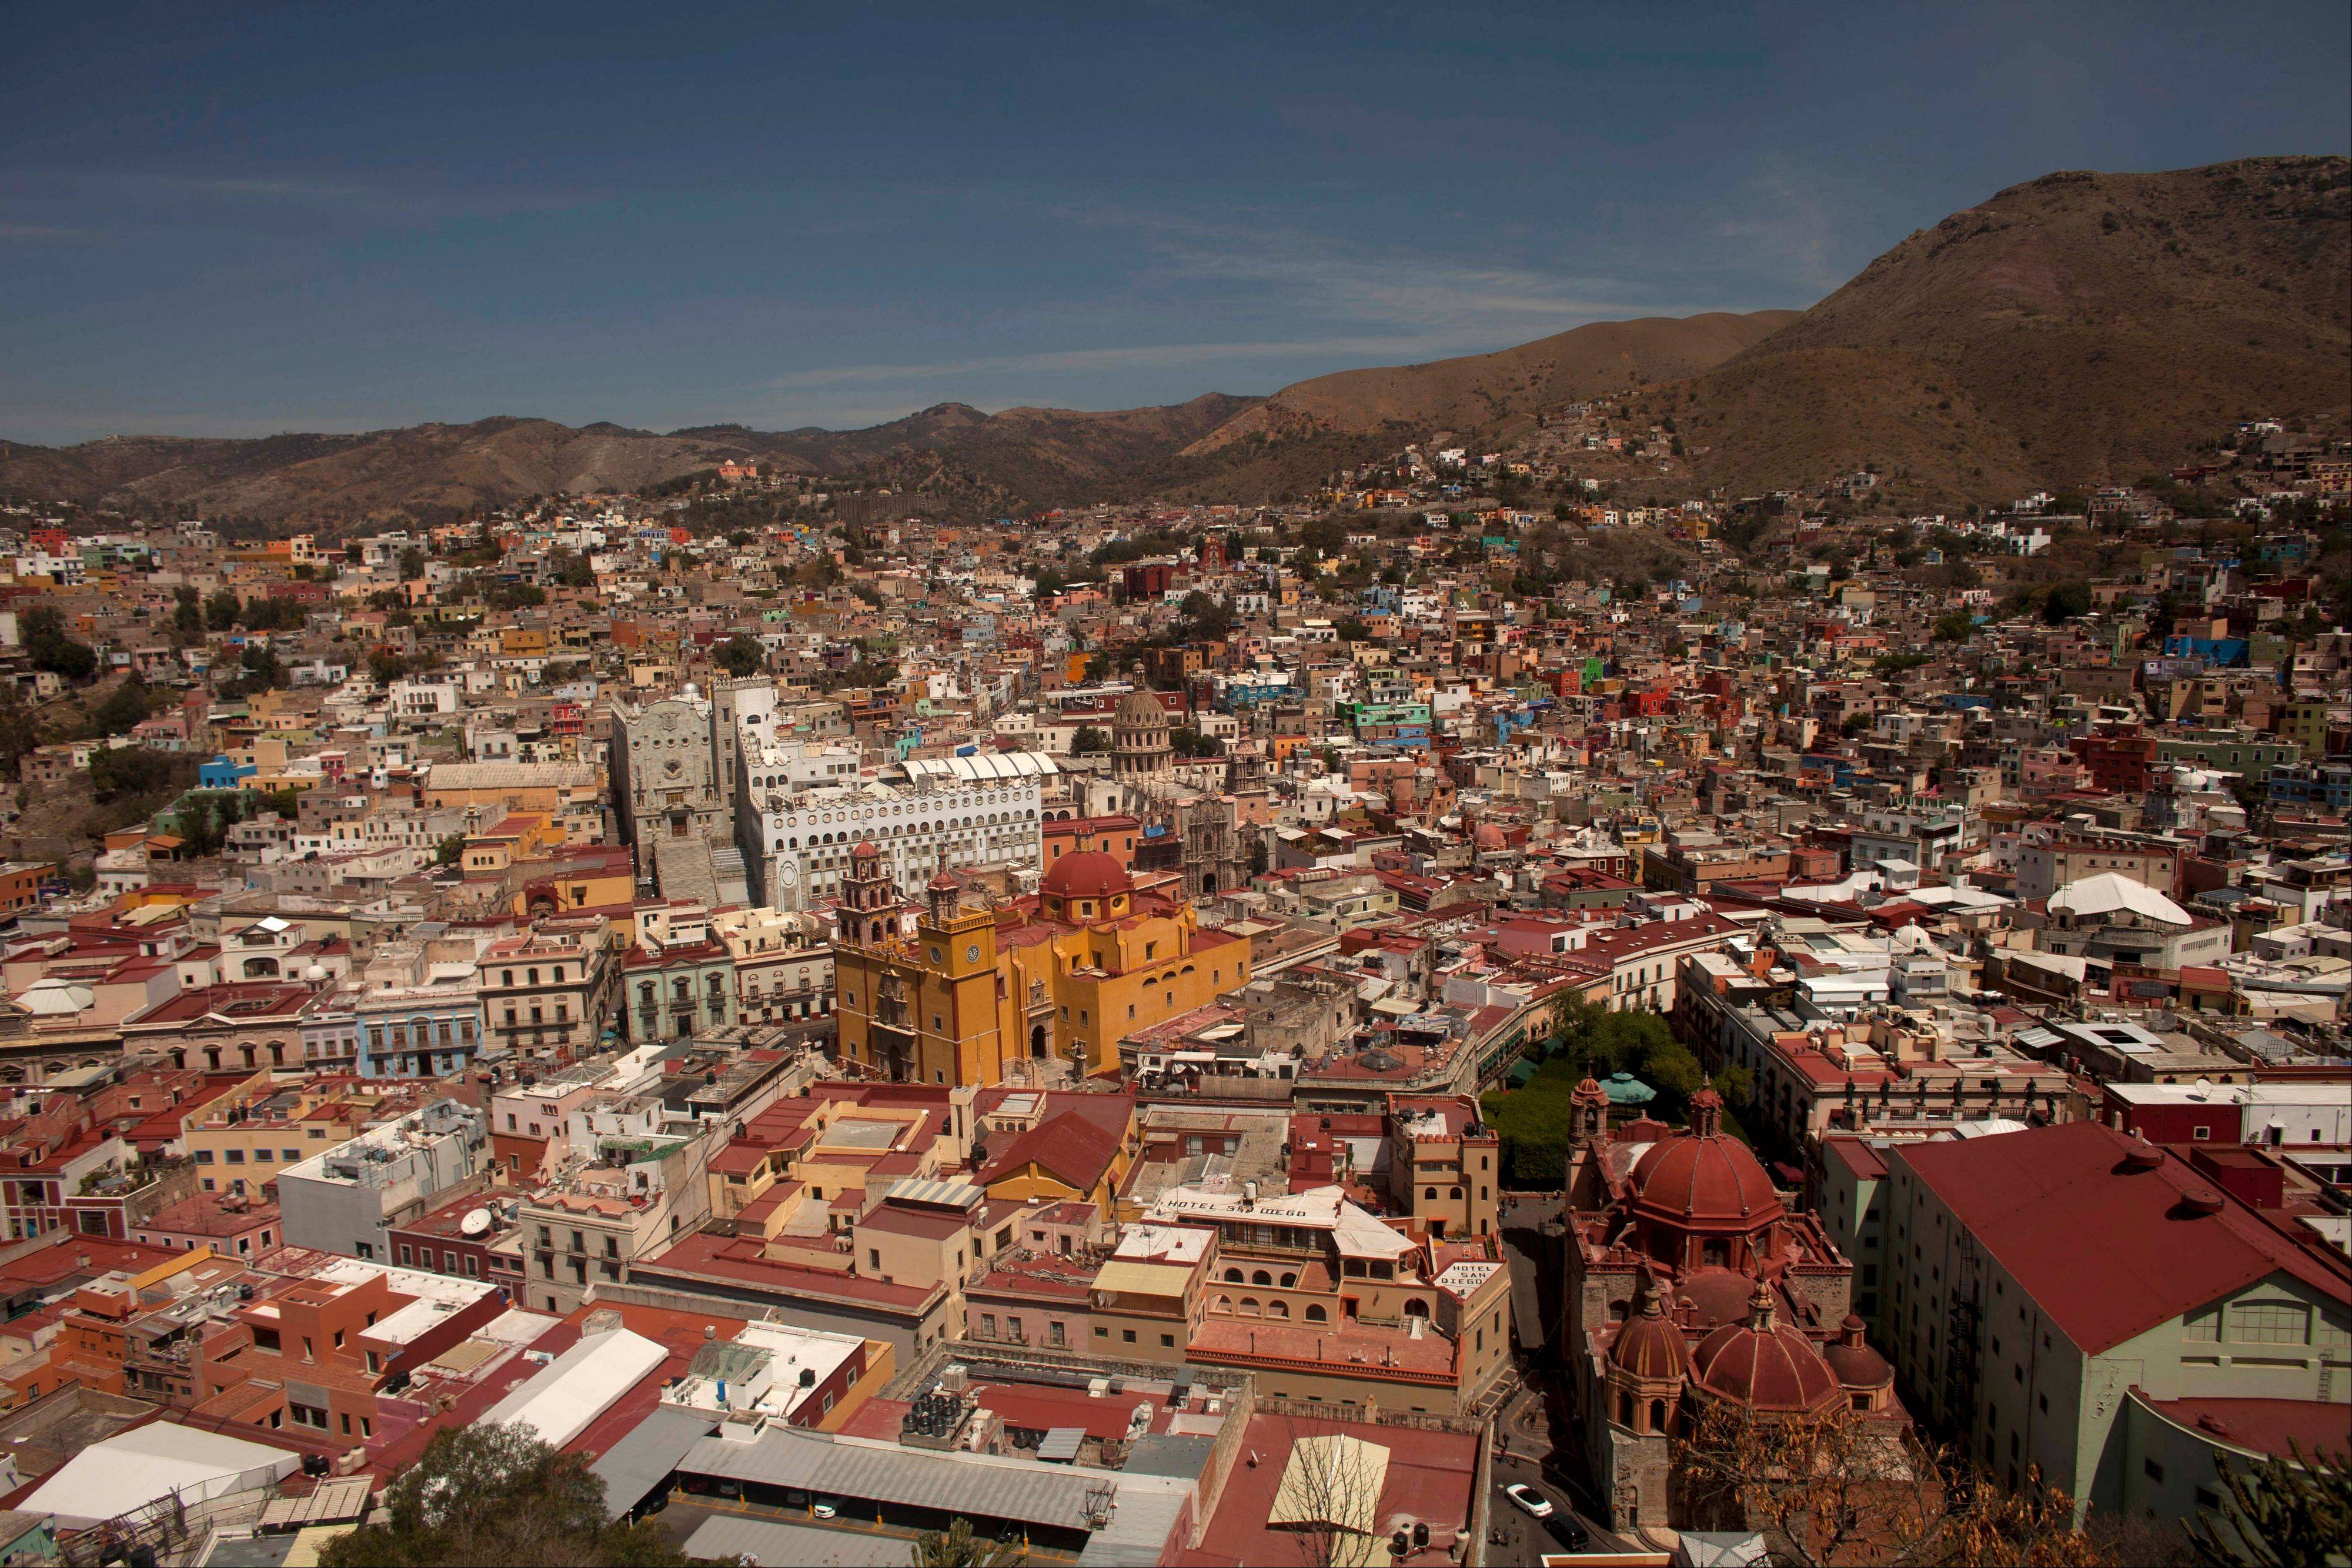 The colonial city of Guanajuato, Mexico, is the cradle of Mexican independence, a city with underground passageways and narrow winding streets that resemble medieval Europe.